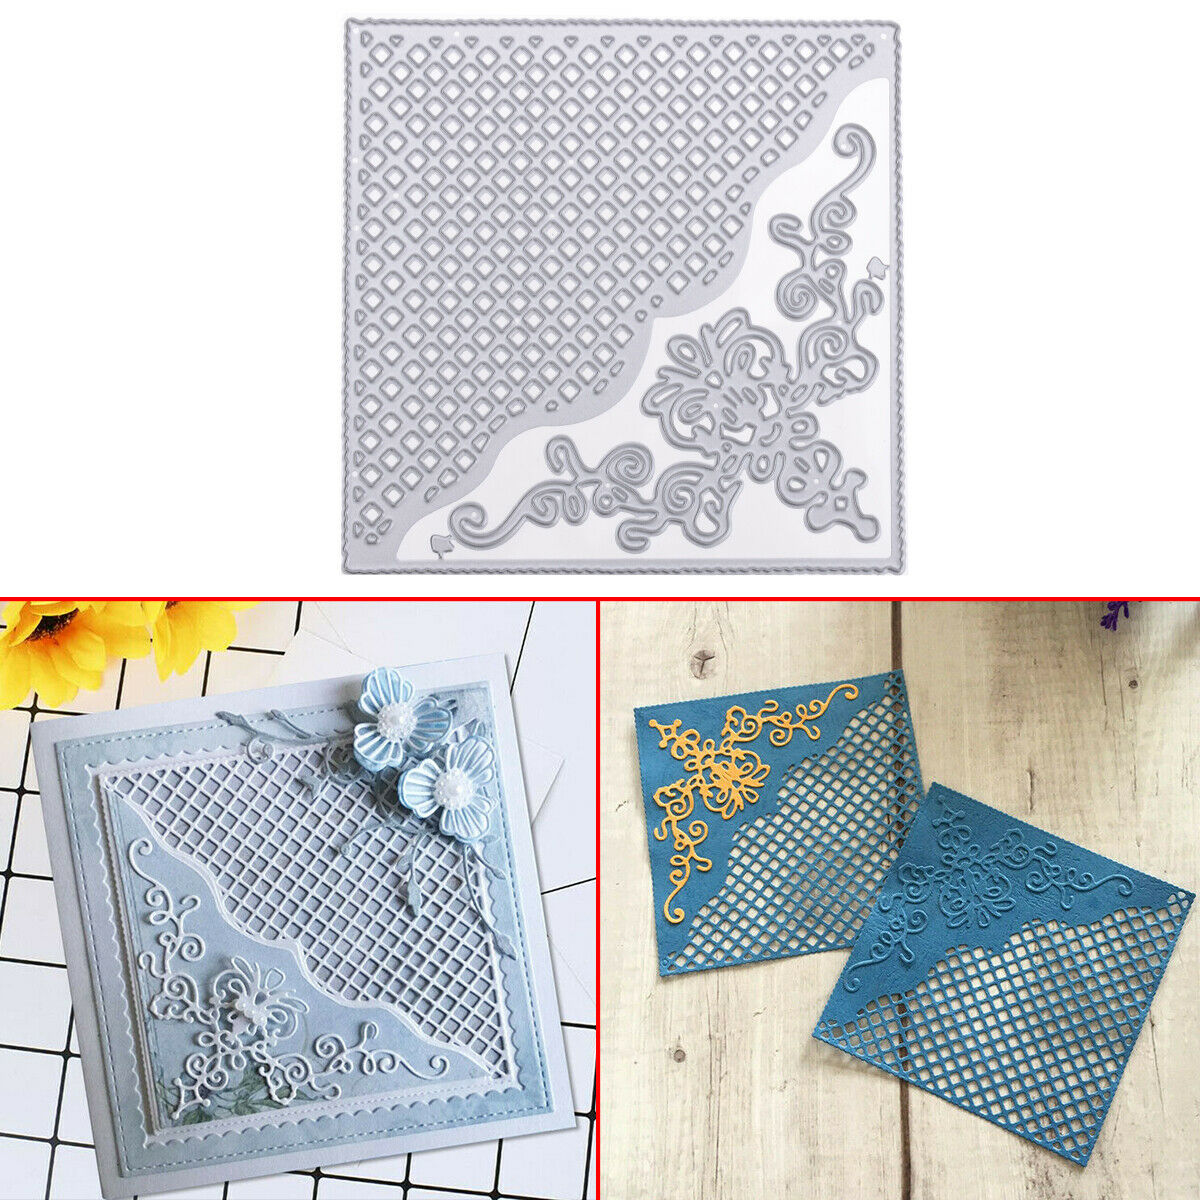 DIY Craft Invitation Card Lace Square Card Making Birthday Card Square Cutting Dies Embossing Stencil for Scrapbooking